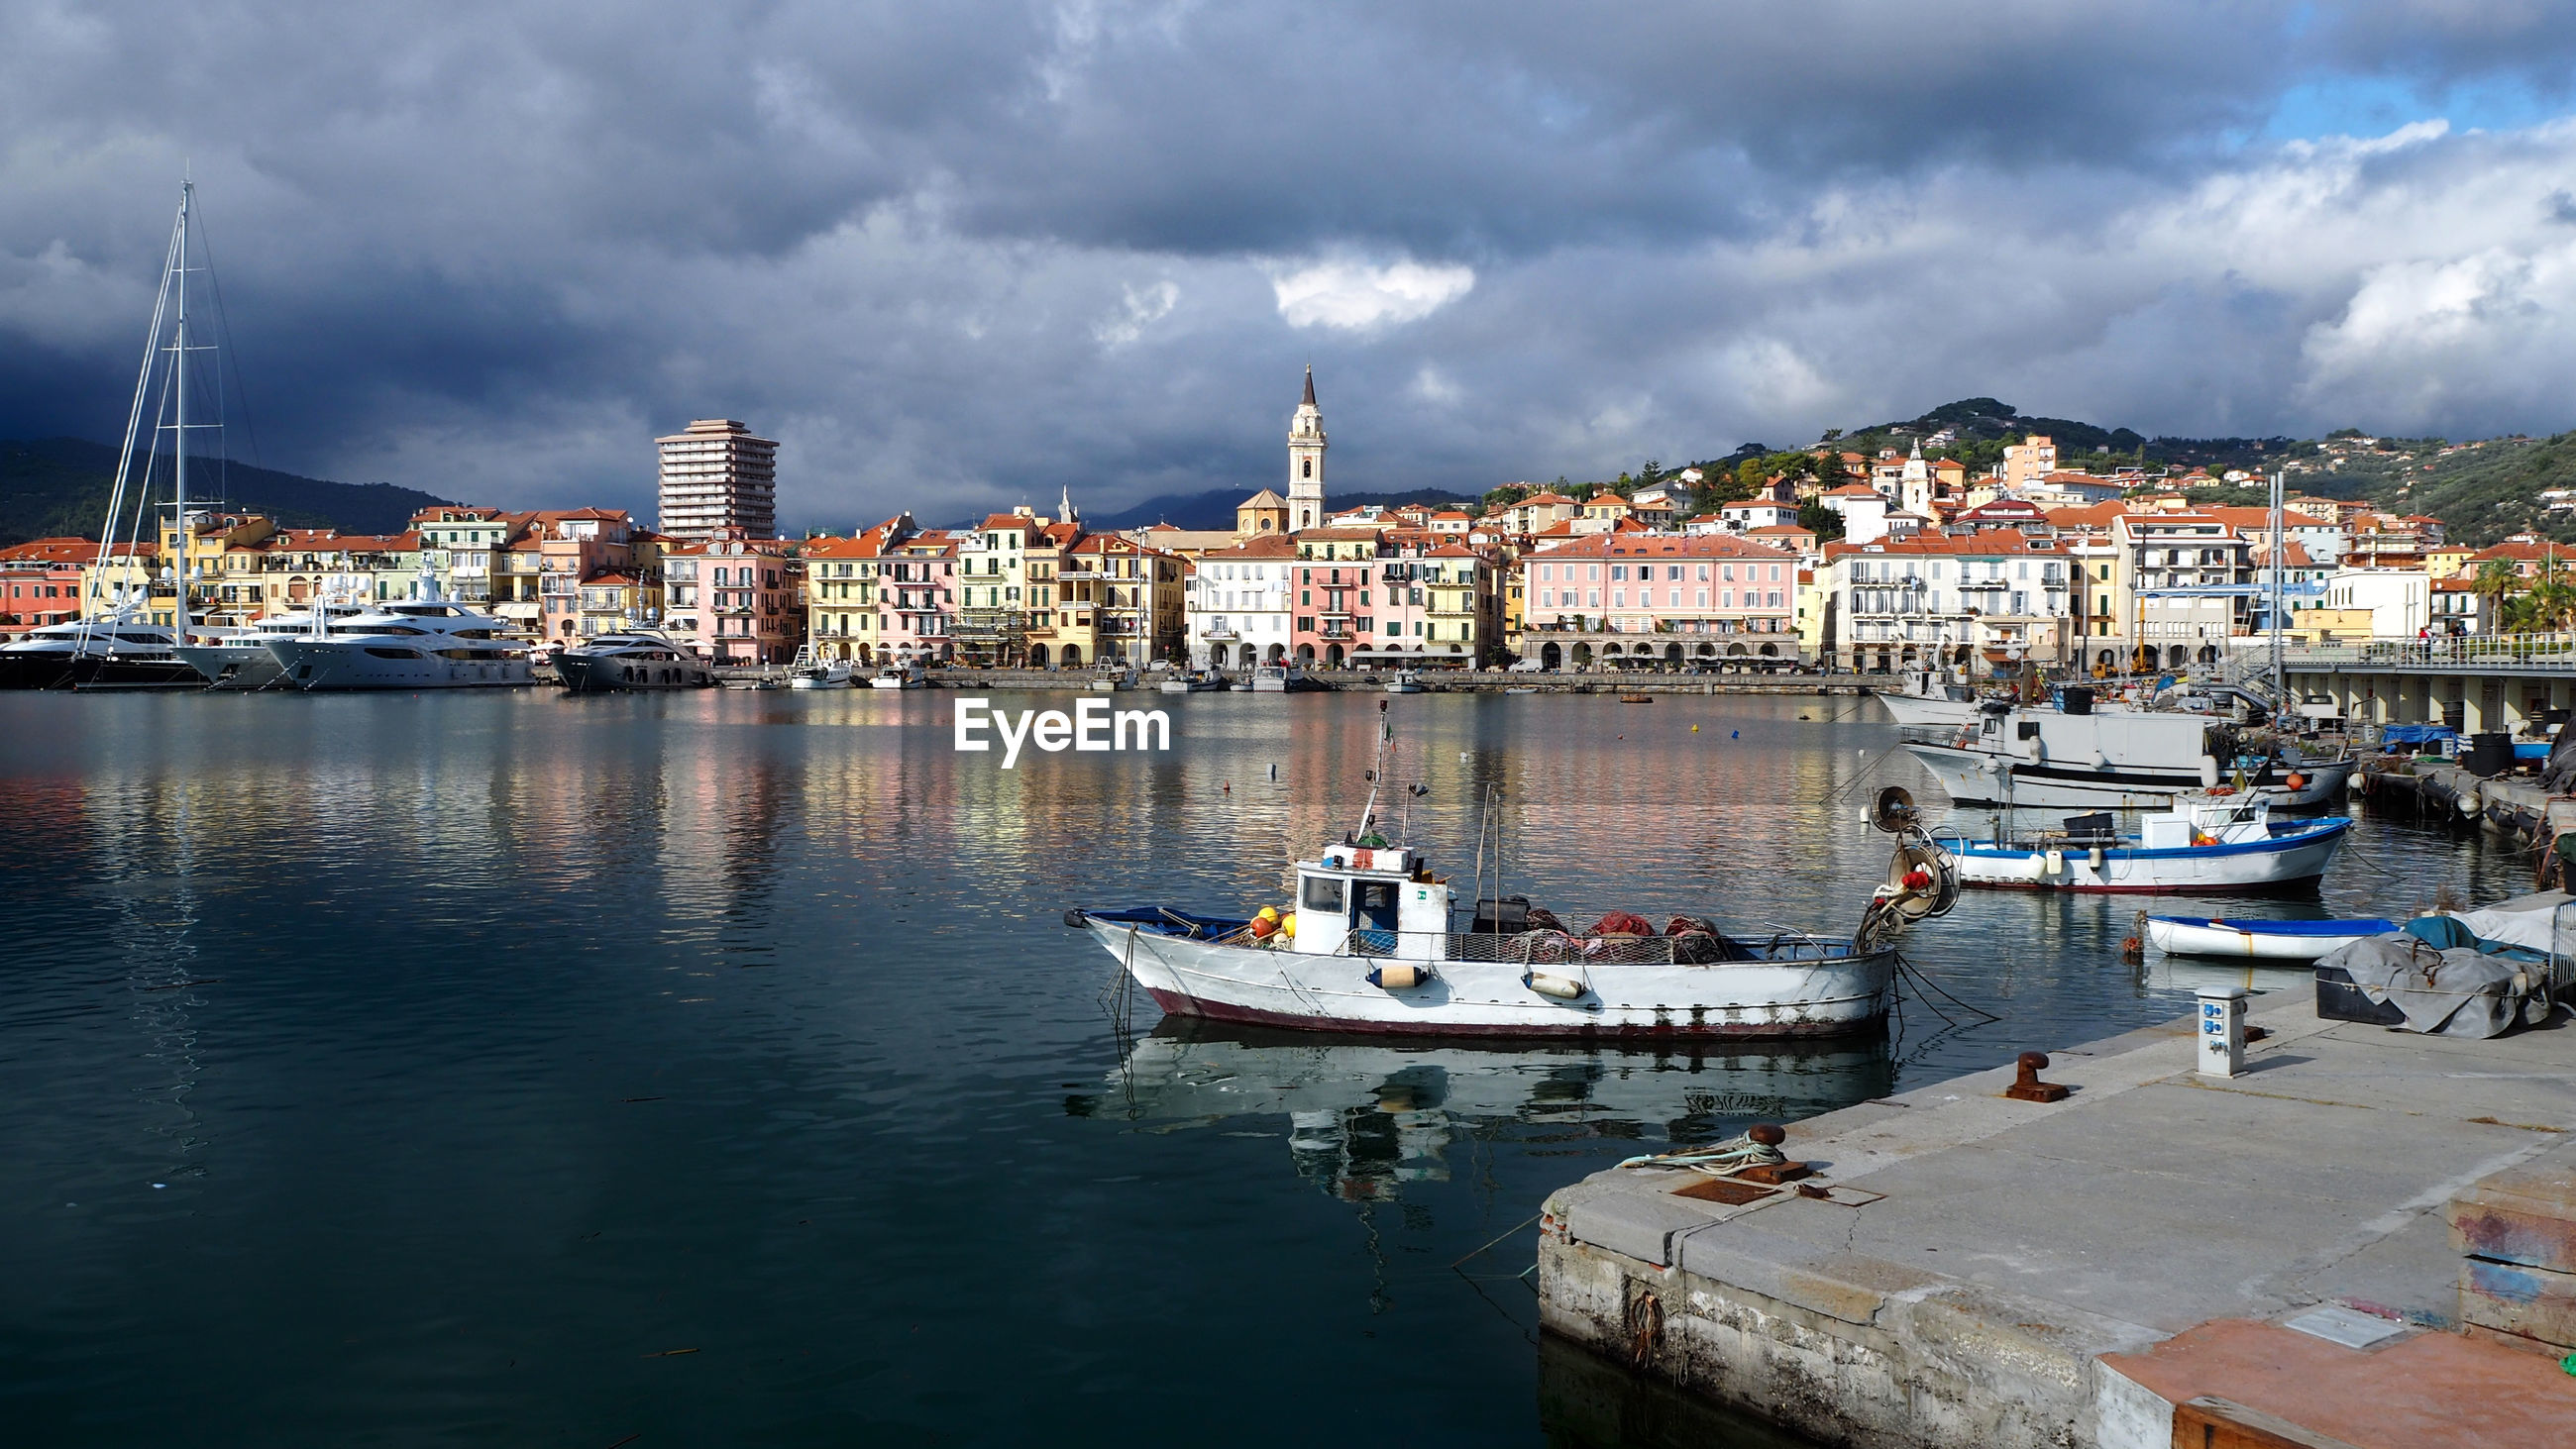 BOATS IN HARBOR BY BUILDINGS AGAINST SKY